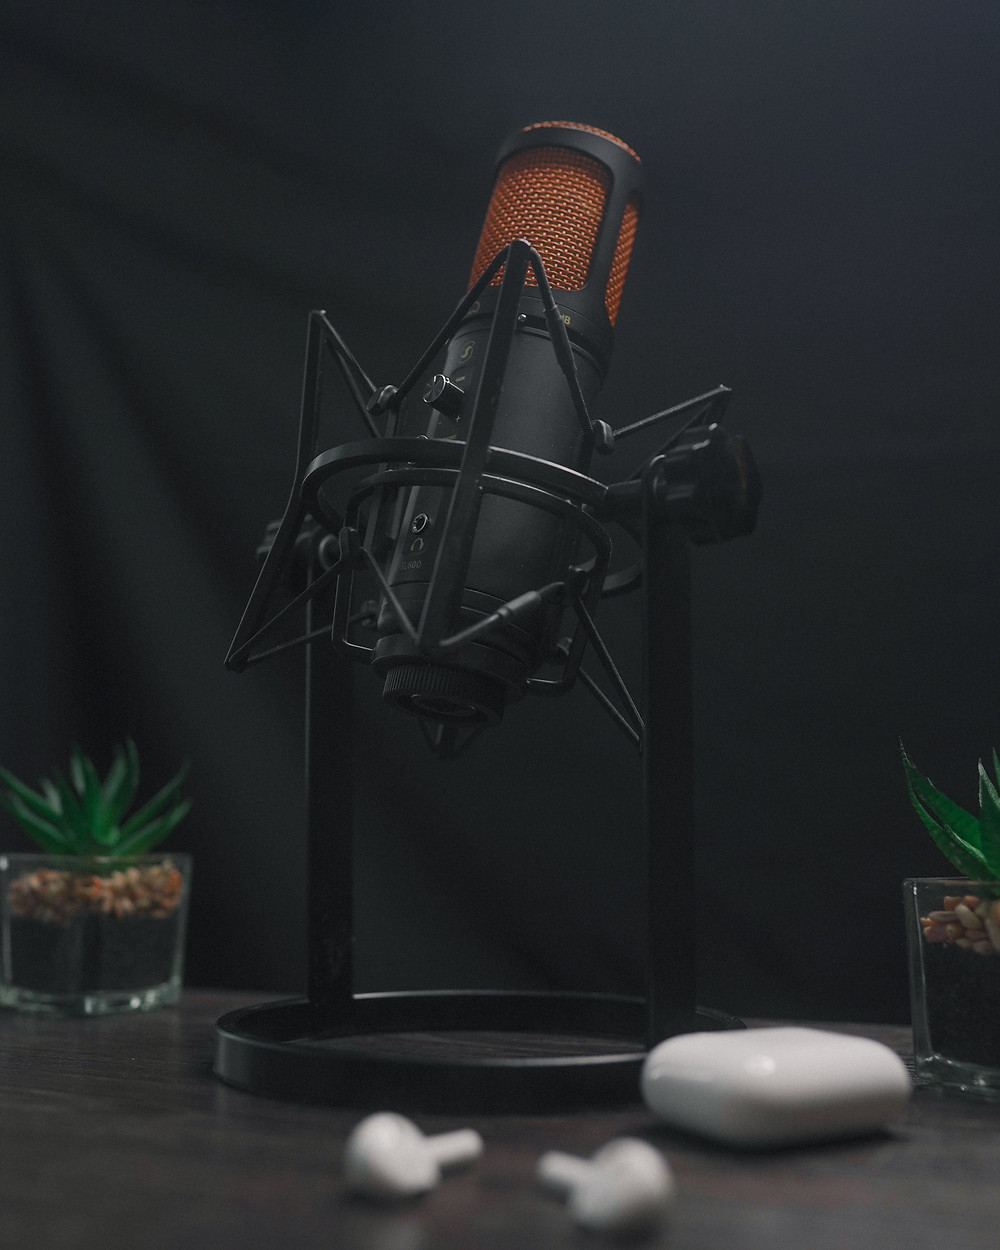 microphone, condenser, xlr, voice over, voice acting, singing